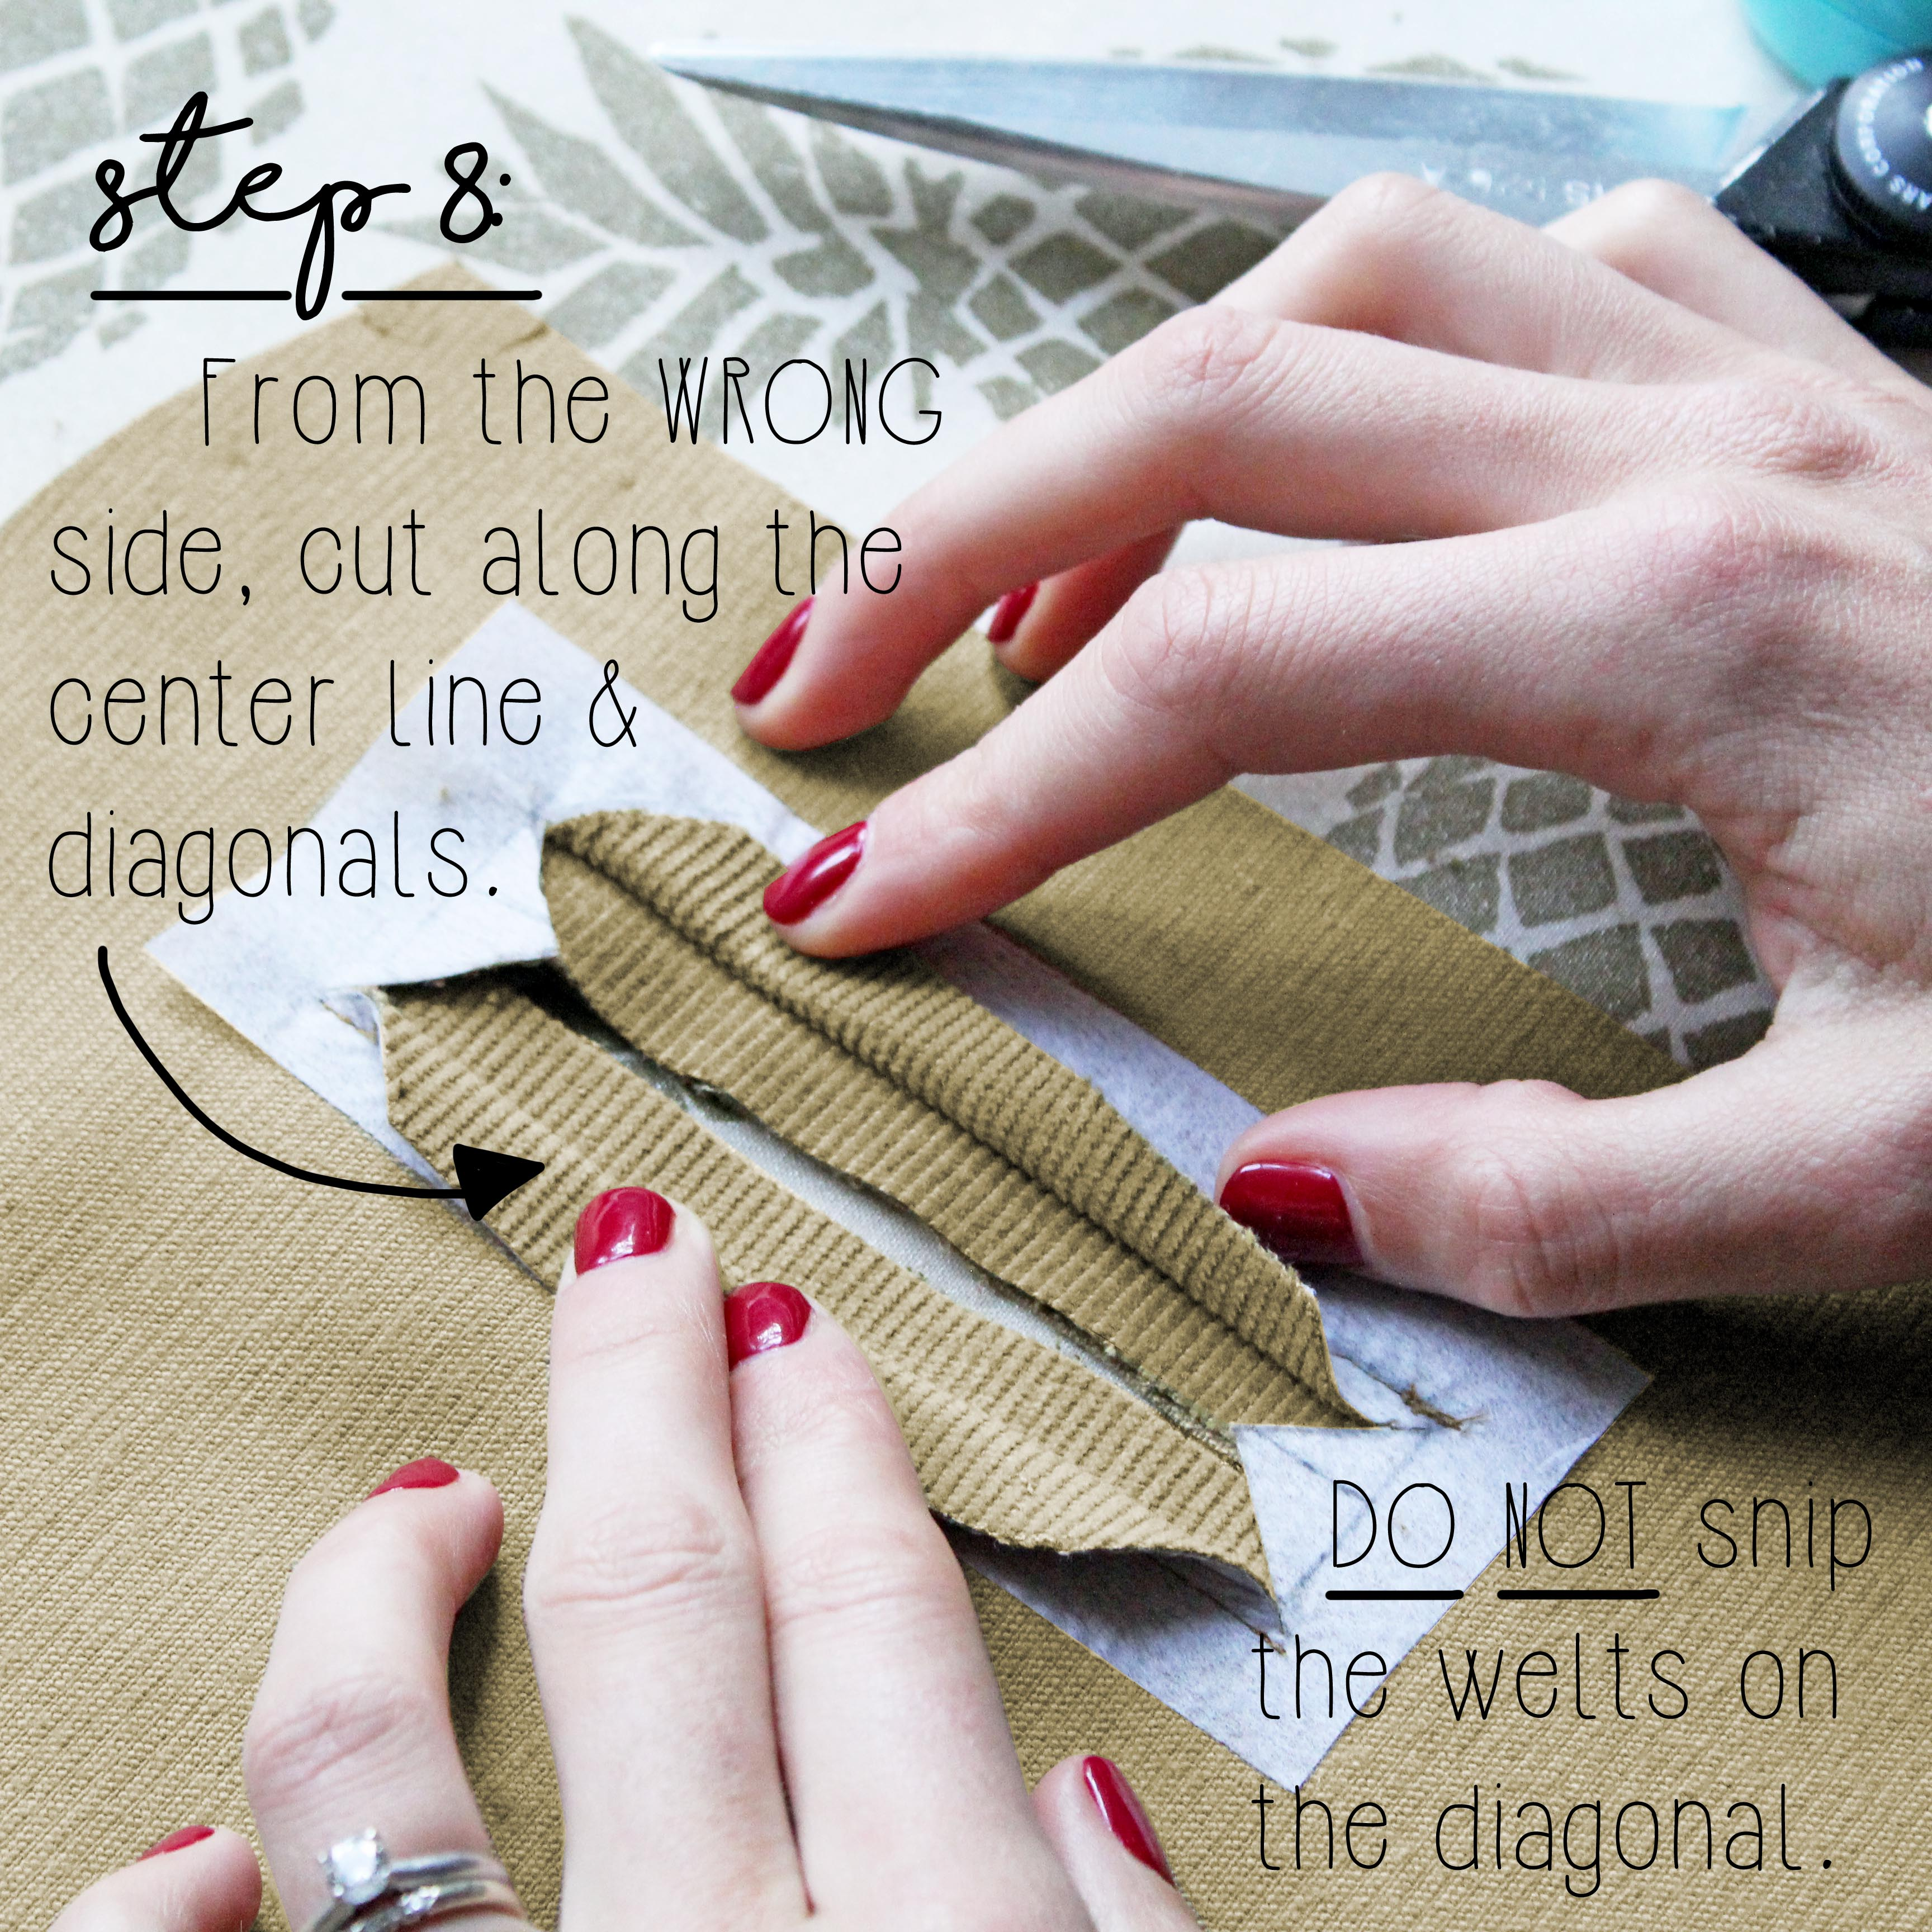 How To Sew A Double Welt Pocket Sewing Tutorial: Step 8